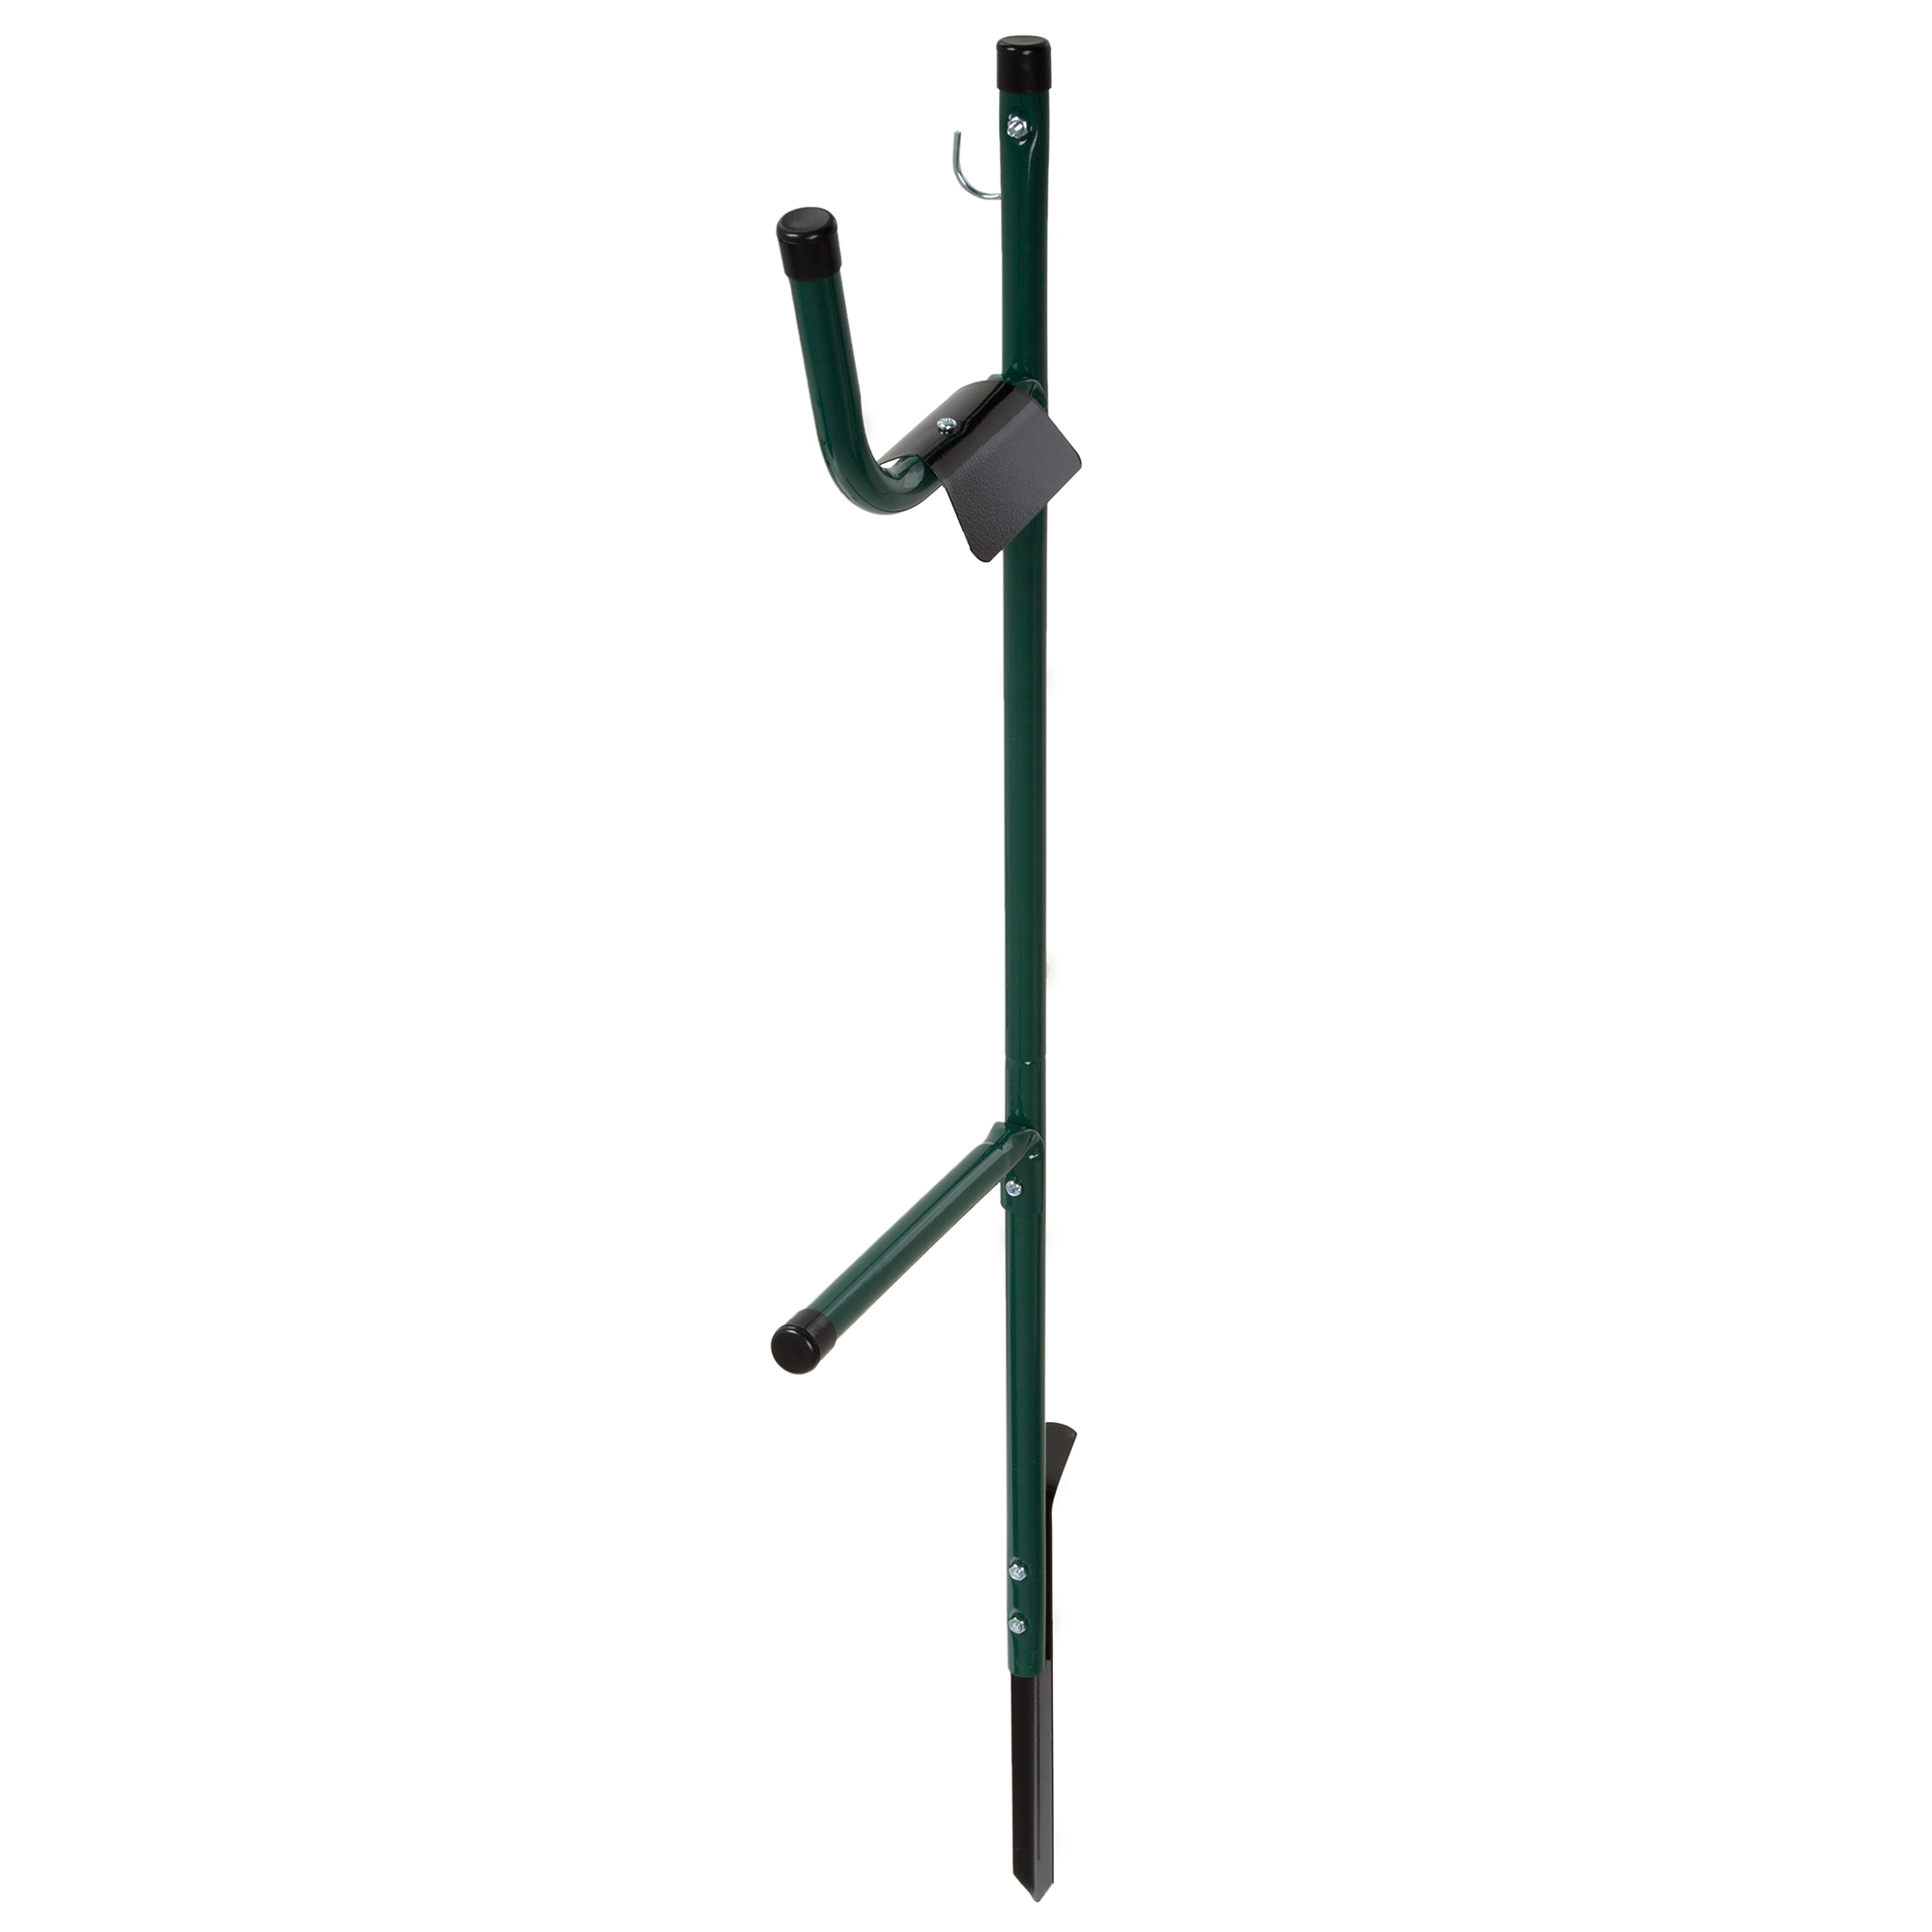 Garden Hose Holder Caddy  Easy Install Outdoor Free Standing Metal Rack For  Hose Management,